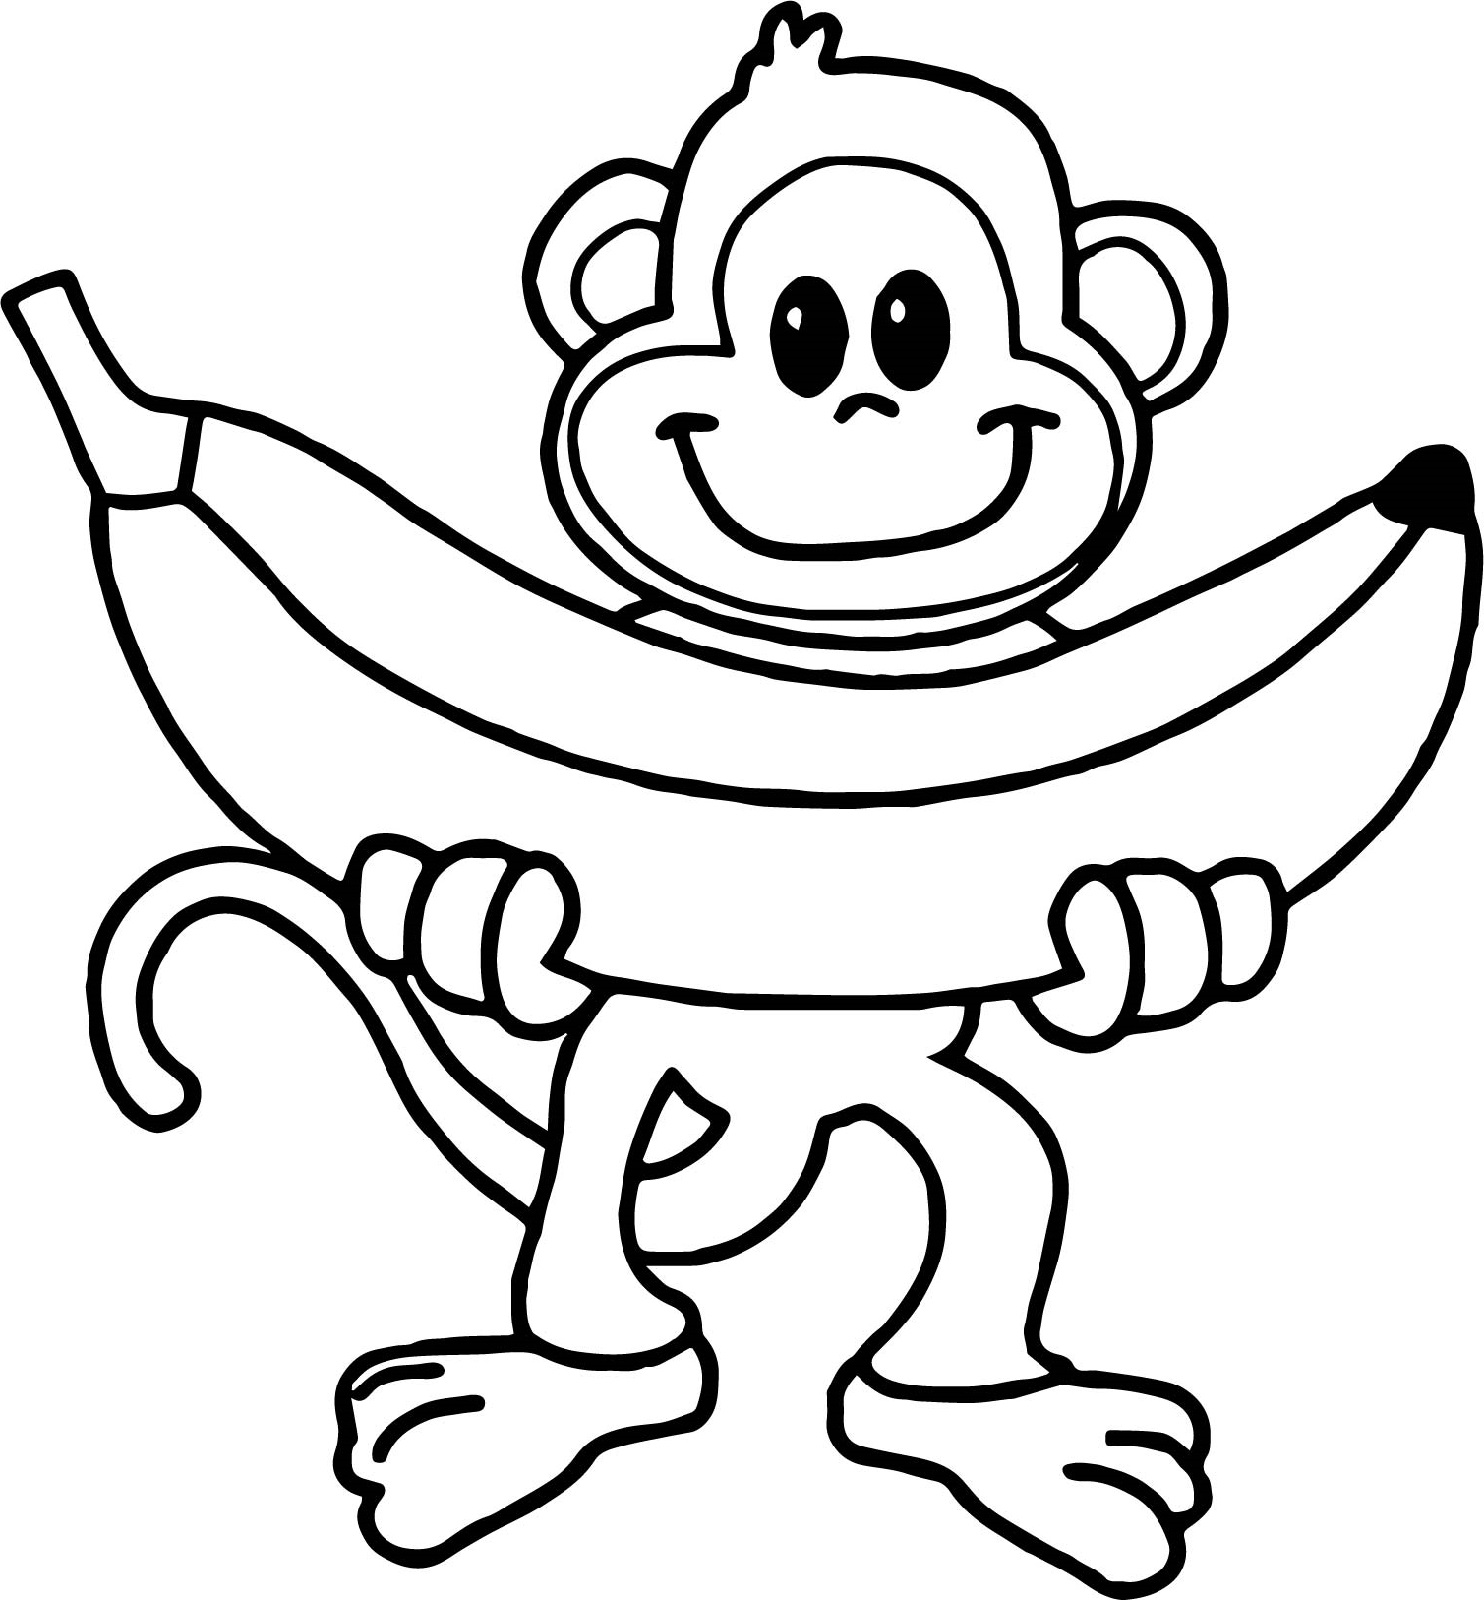 coloring pages of monkey monkeys to download for free monkeys kids coloring pages of coloring pages monkey